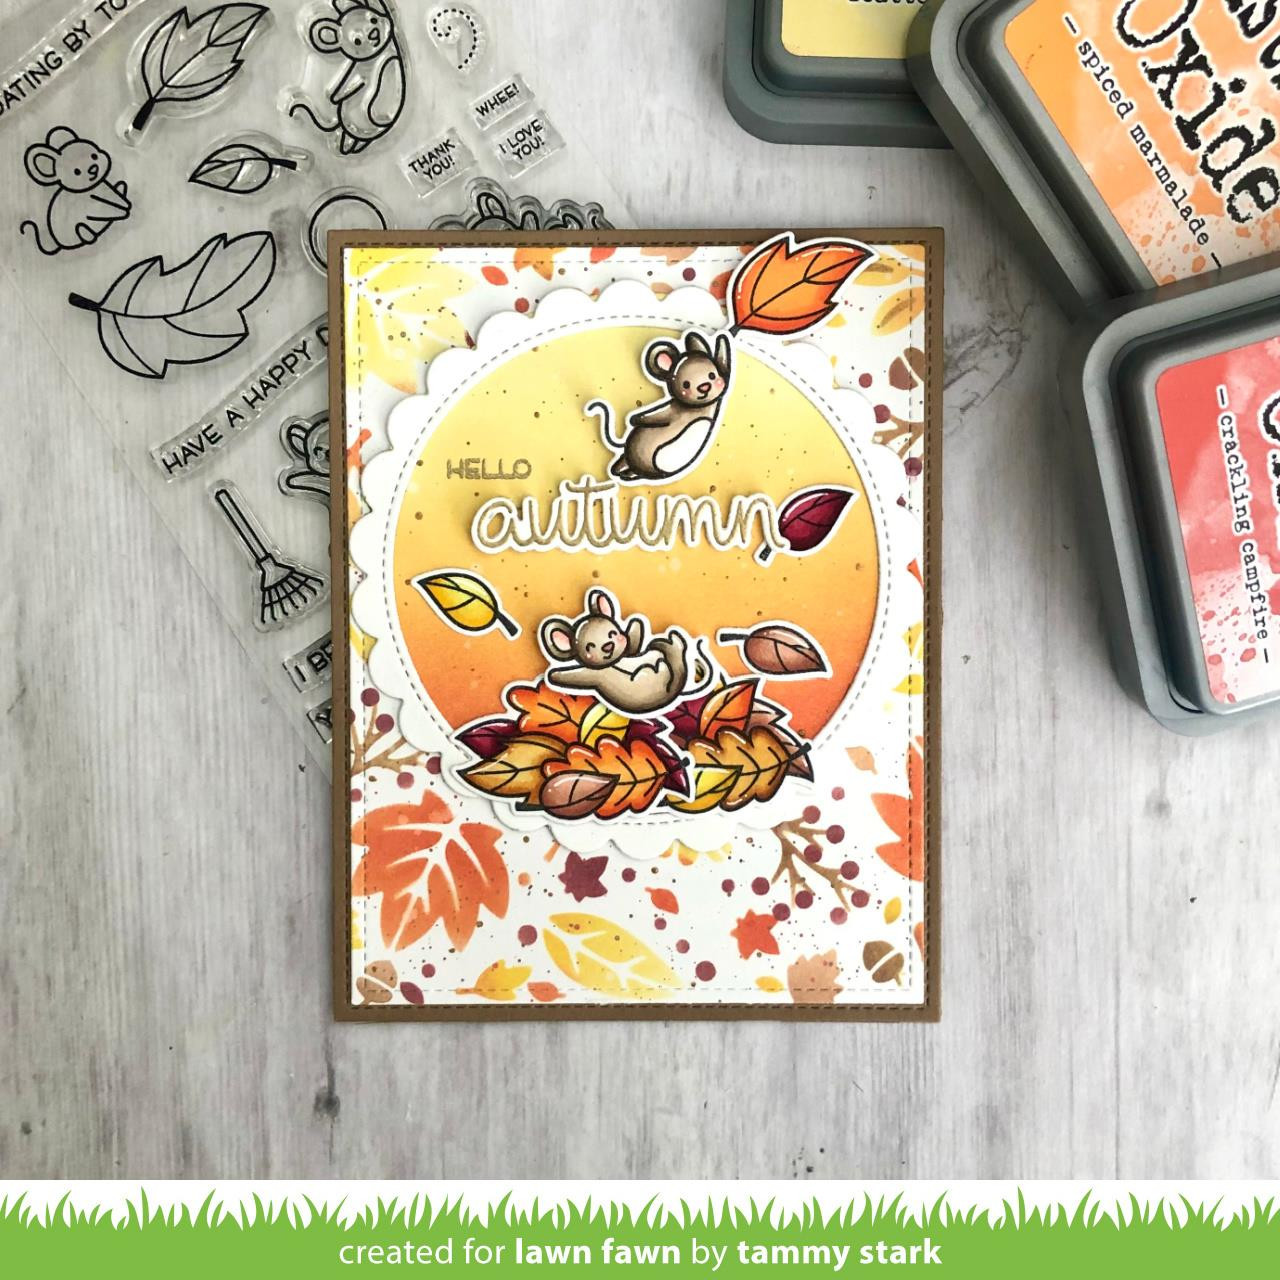 Fall Leaves Background, Lawn Fawn Stencils -